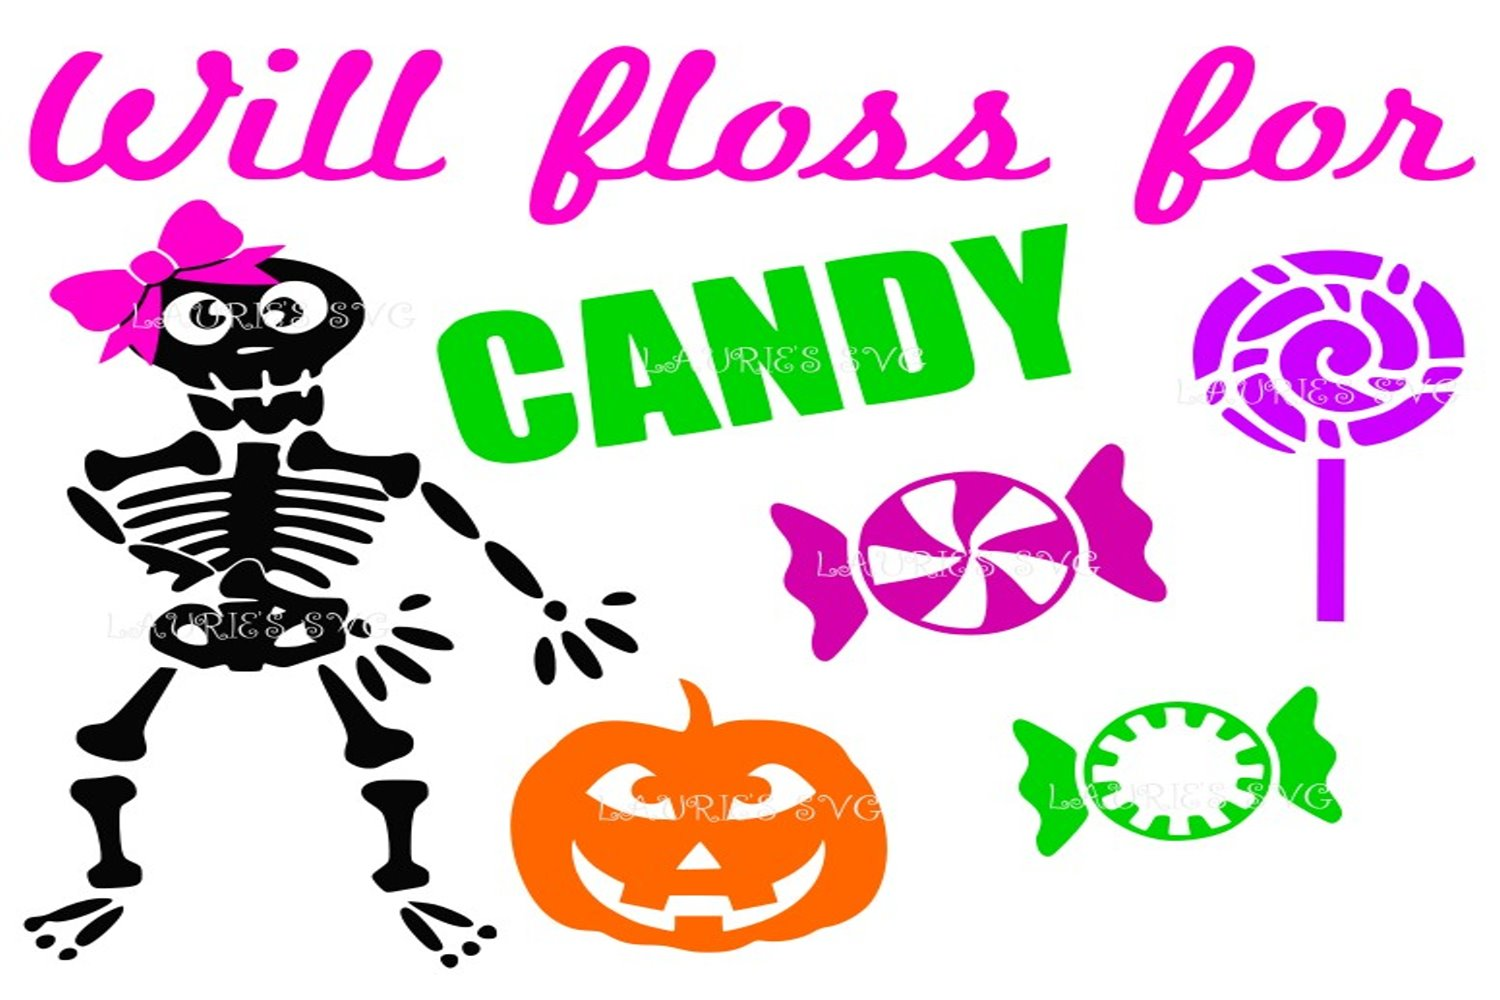 Halloween will floss for candy girl FILE SVG,EPS,DXF,PNG,JPG example image 1